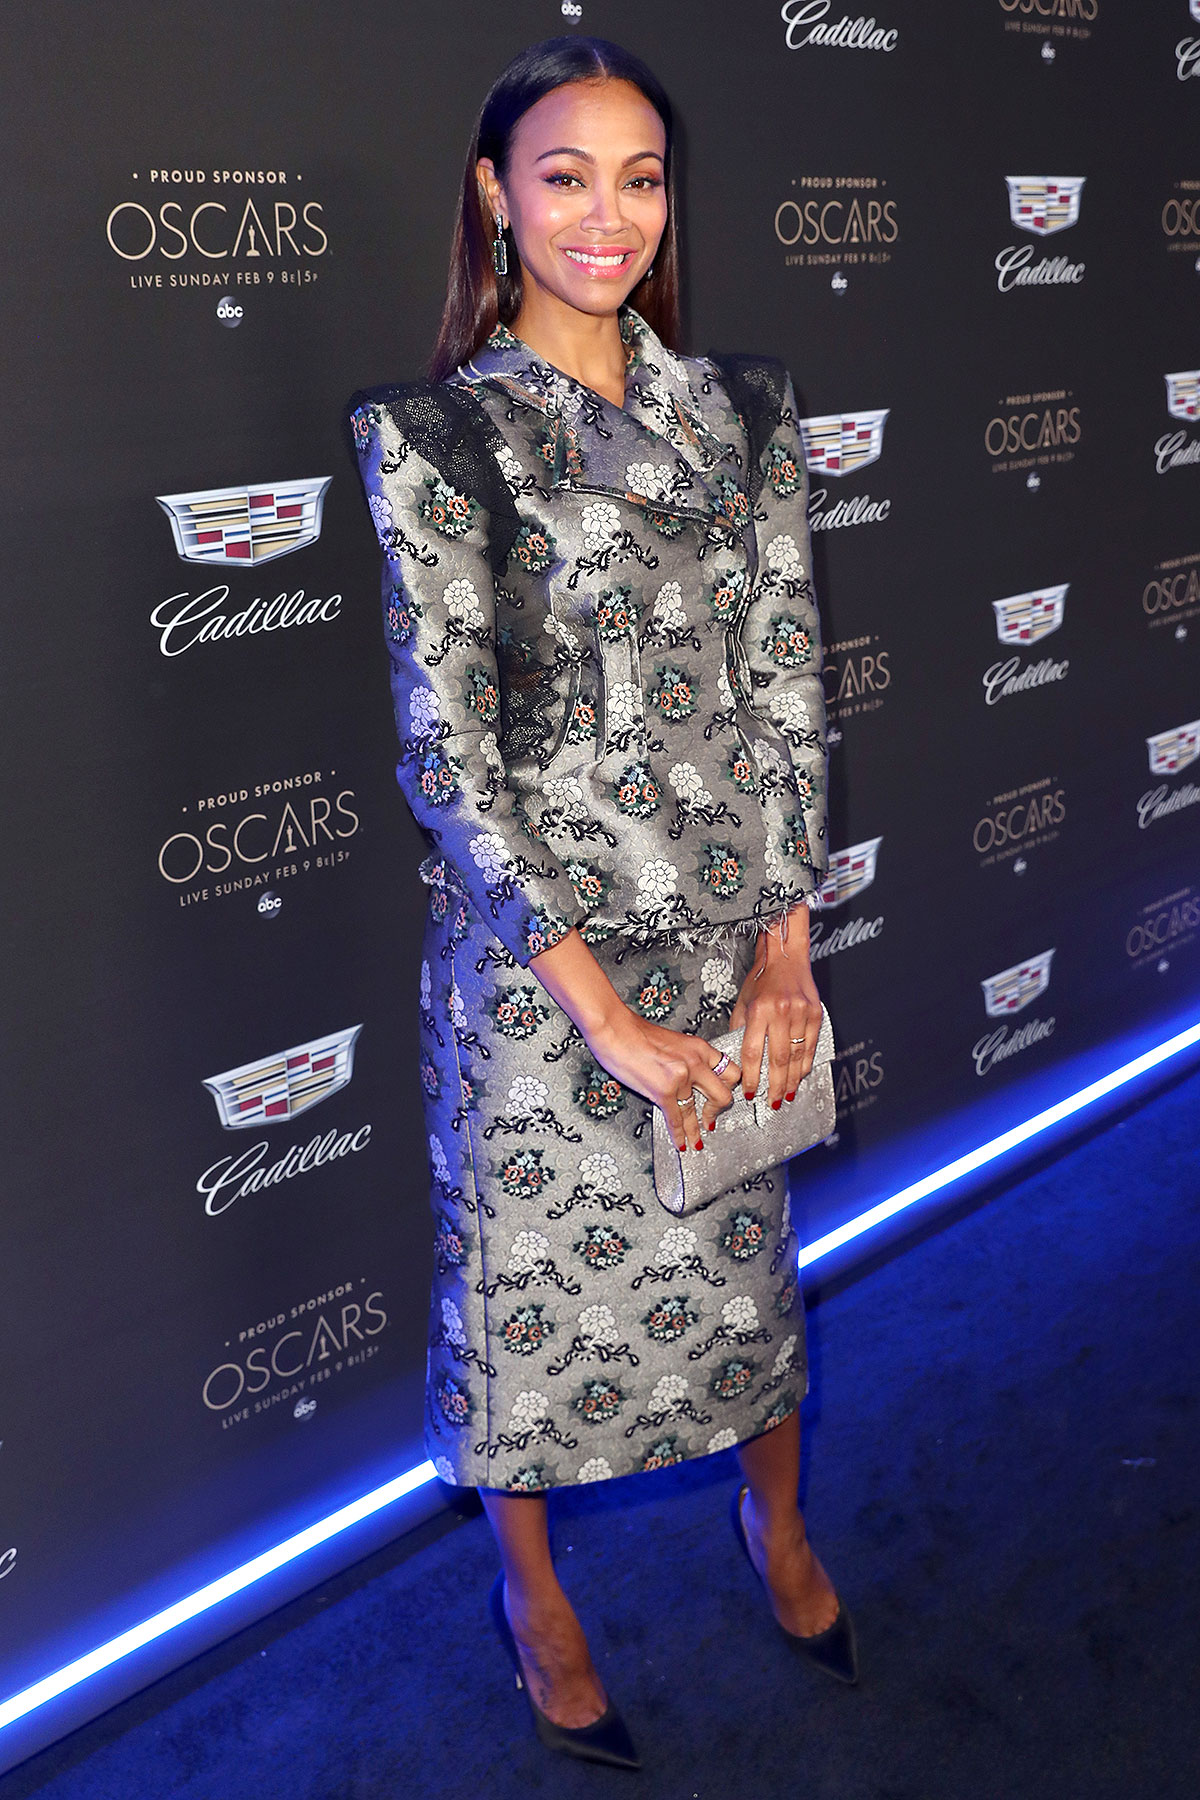 Zoe Saldana attends the Cadillac Oscar Week Celebration at Chateau Marmont on February 6, 2020